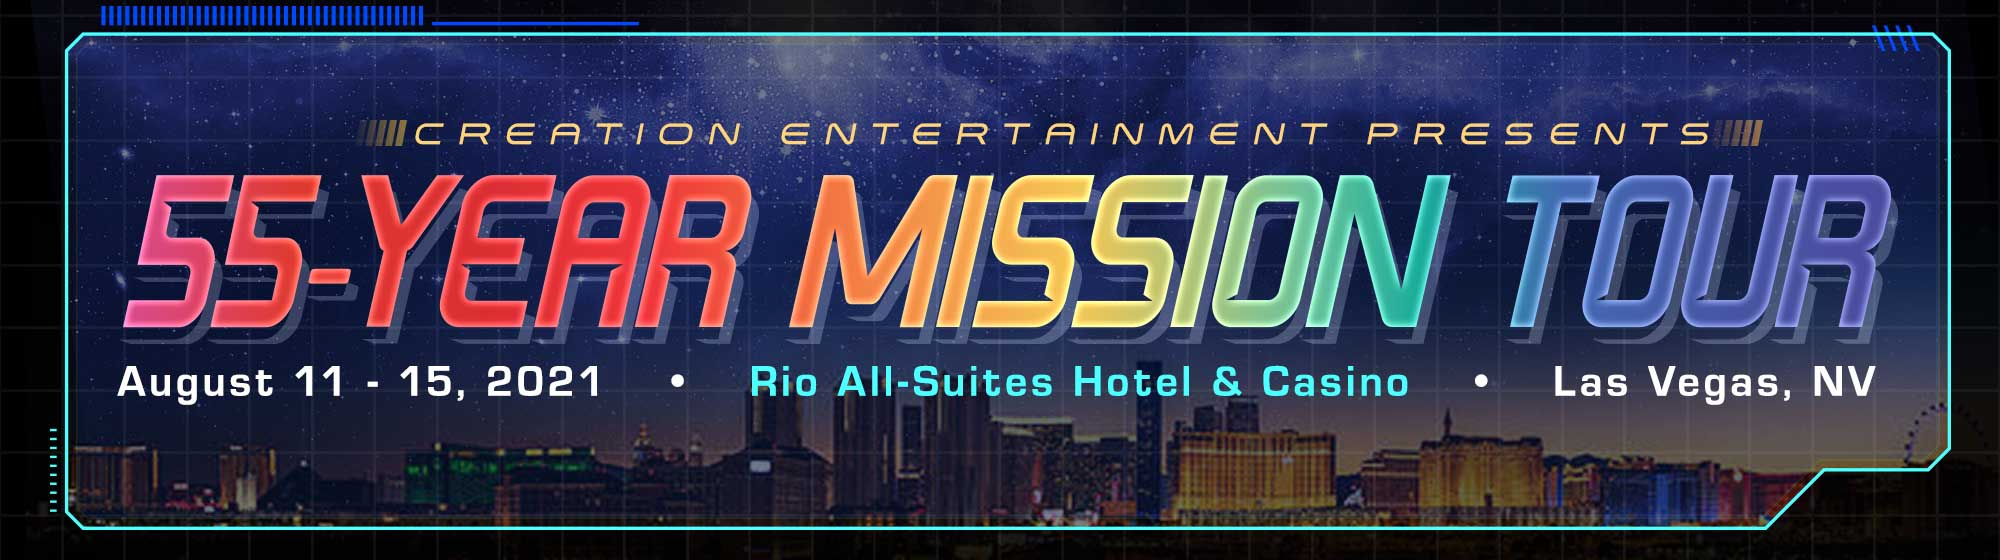 55 Year Mission Las Vegas